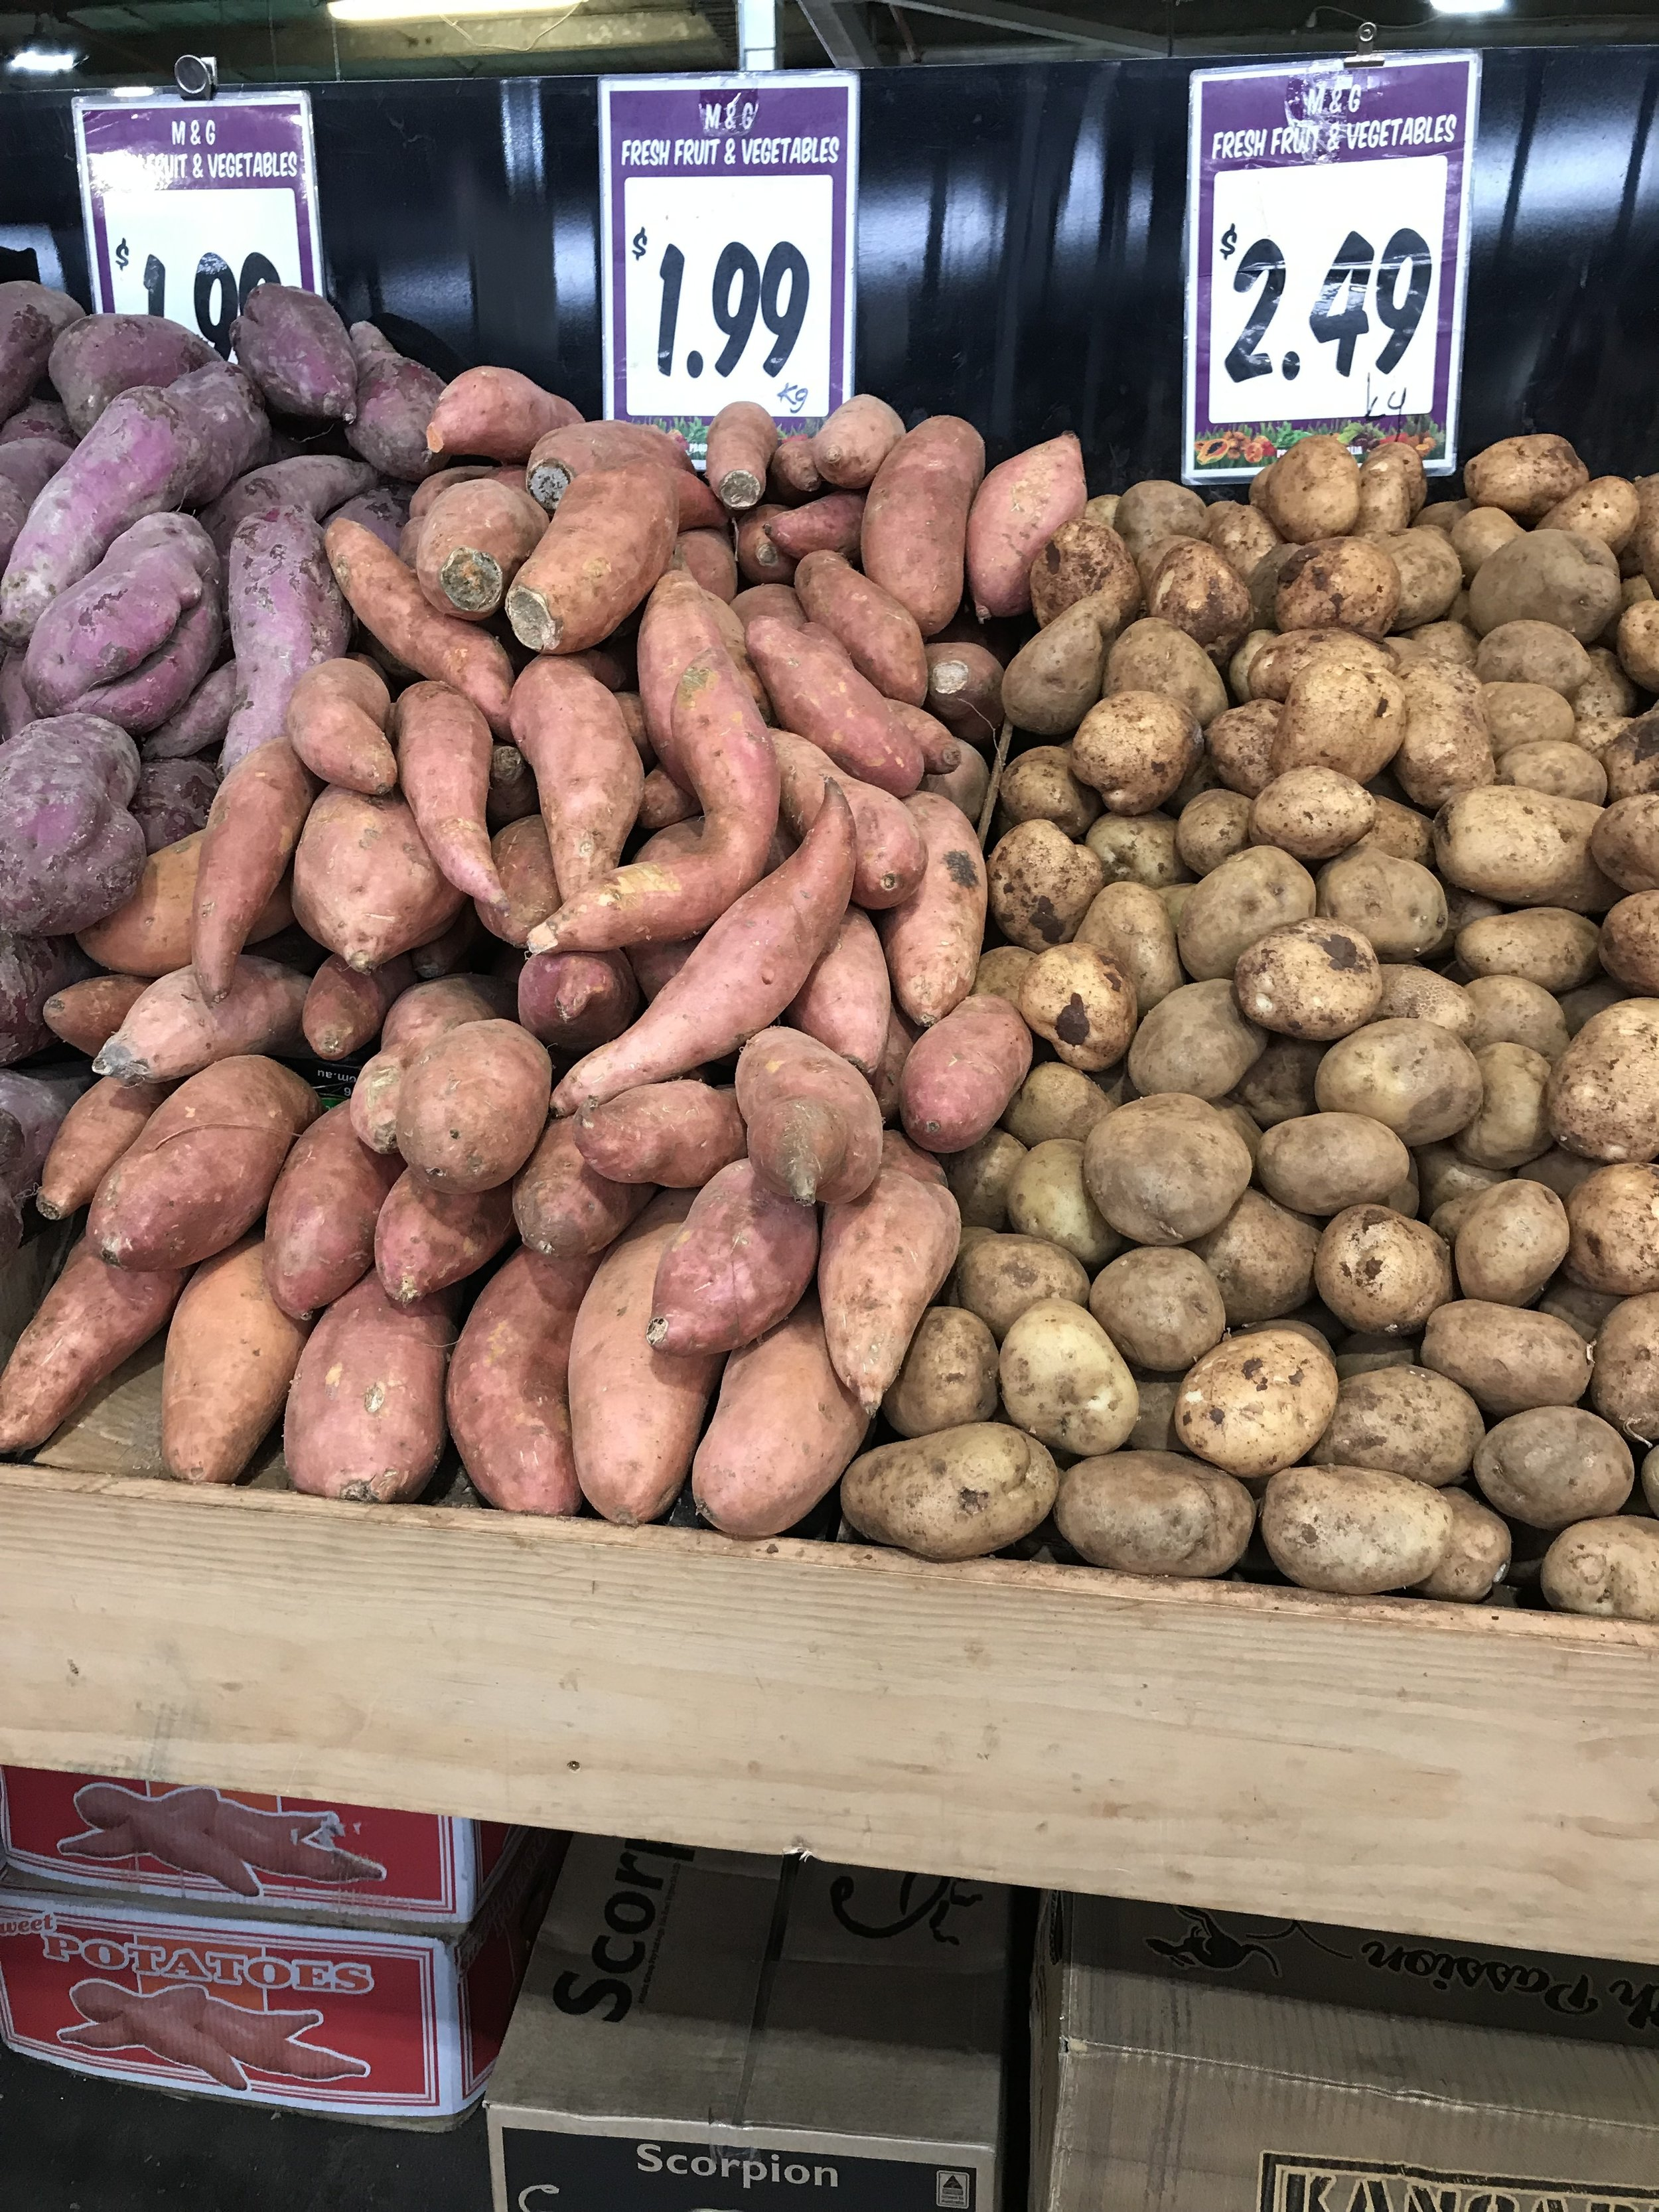 - These photos were taken at the local market in Dandenong, Victoria. The only thing Aboriginal here is the name 'Dandenong', a word from the Woiwurrung Aboriginal language.The market is full of hard-working Australians, mostly New Australians, Greeks, Italians and more lately Indians, Chinese, Vietnamese and refugees from the 'Stans' and Africa. All working hard to grow and sell great produce, including all the agrarian tubers such as yams, potatoes, daikon, et al.But no yam daisy, or myrnong, is on offer.